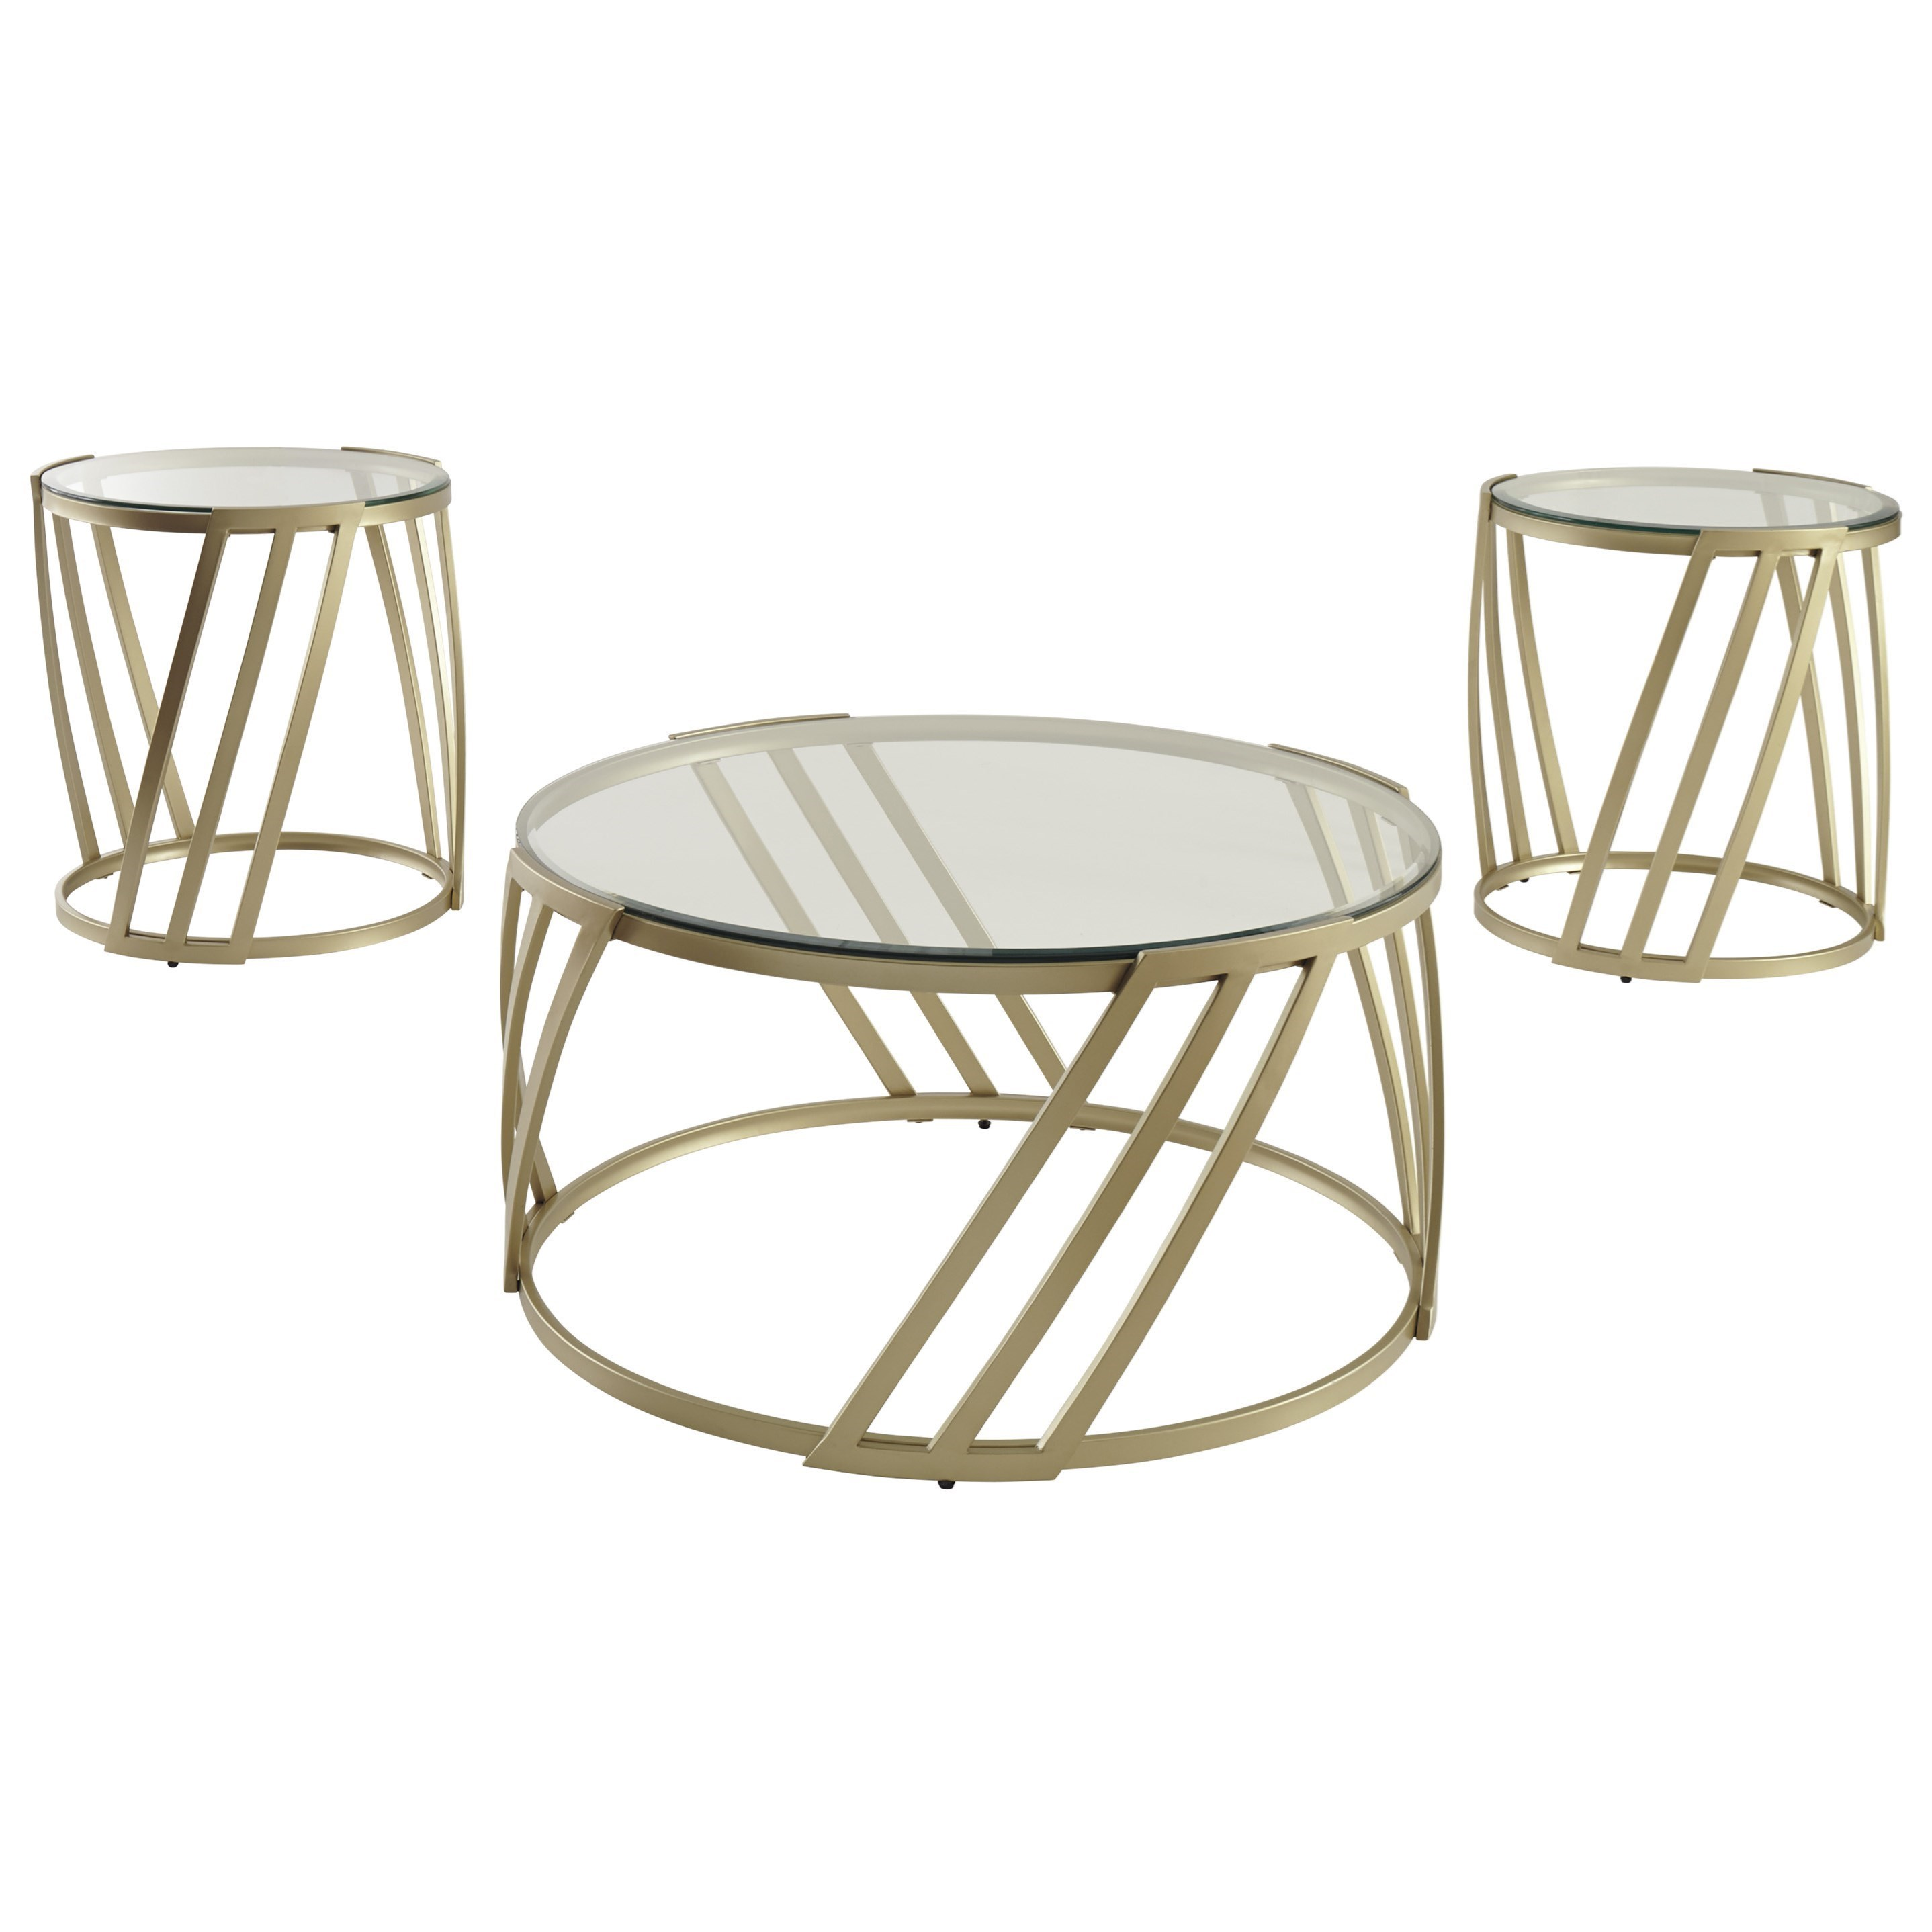 Signature Design by Ashley Austiny 3 Piece Occasional Table Set - Item Number: T345-13